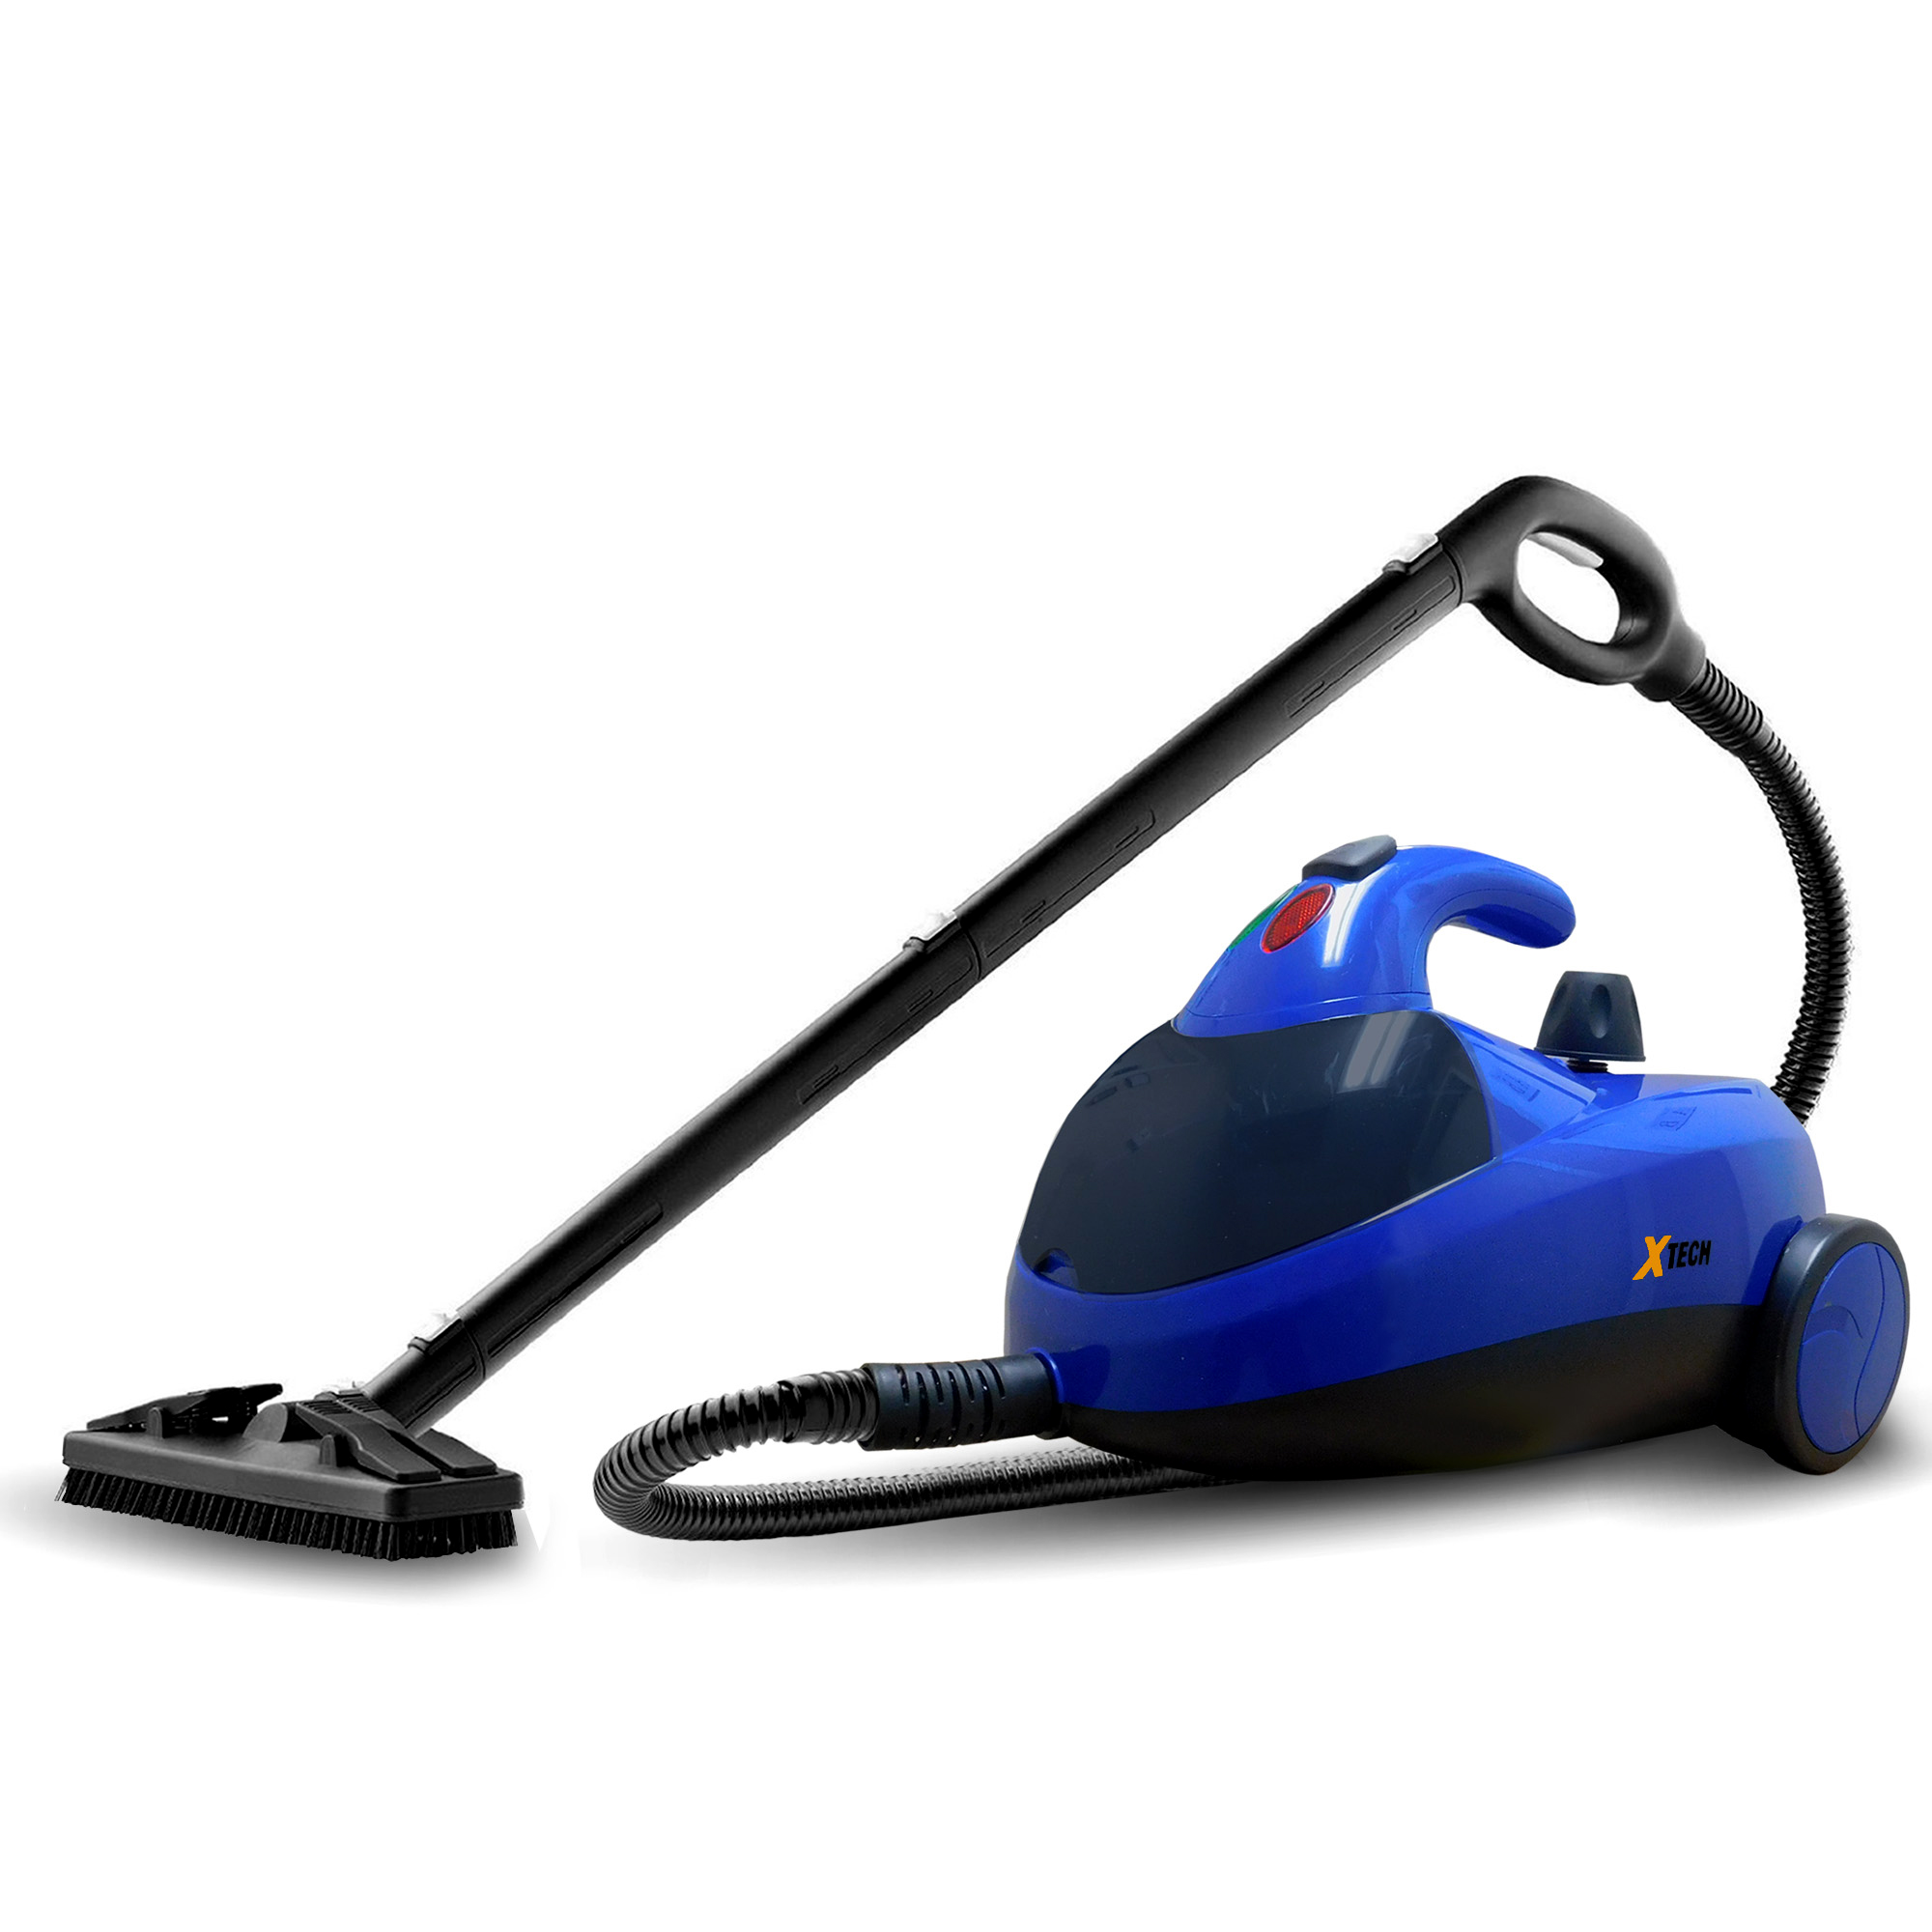 Xtech XHSC-200 Canister Steam Cleaner Heavy-Duty 1500watts 50 oz. Steamer with 13 Assorted Attachments and Accessories